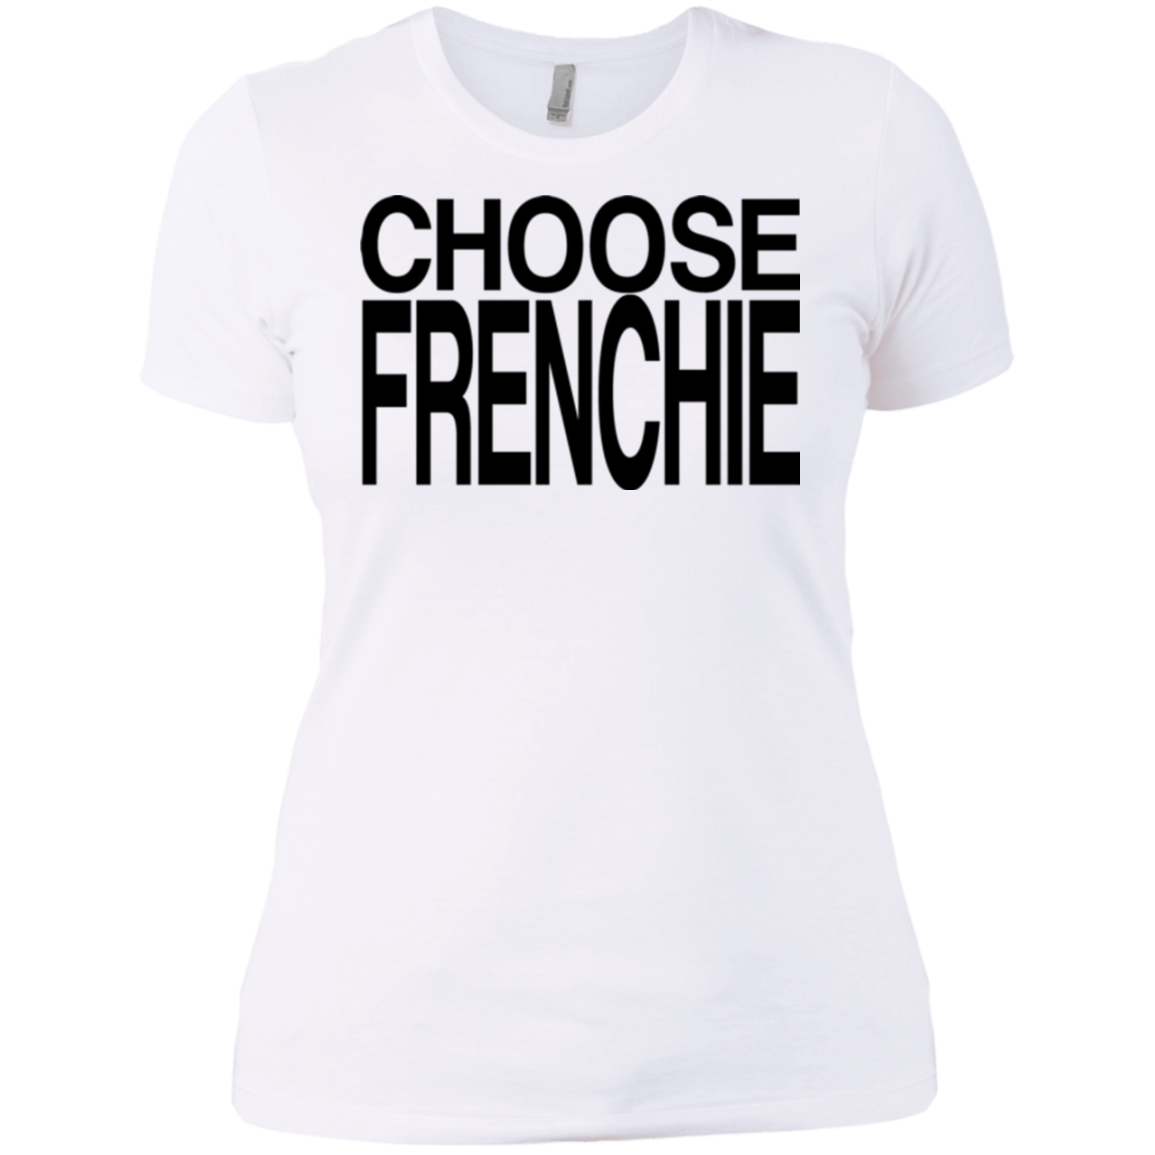 Choose Frenchie Womens Fit Boyfriend T-Shirt - Women's Tees I Love Frenchie Bulldogs